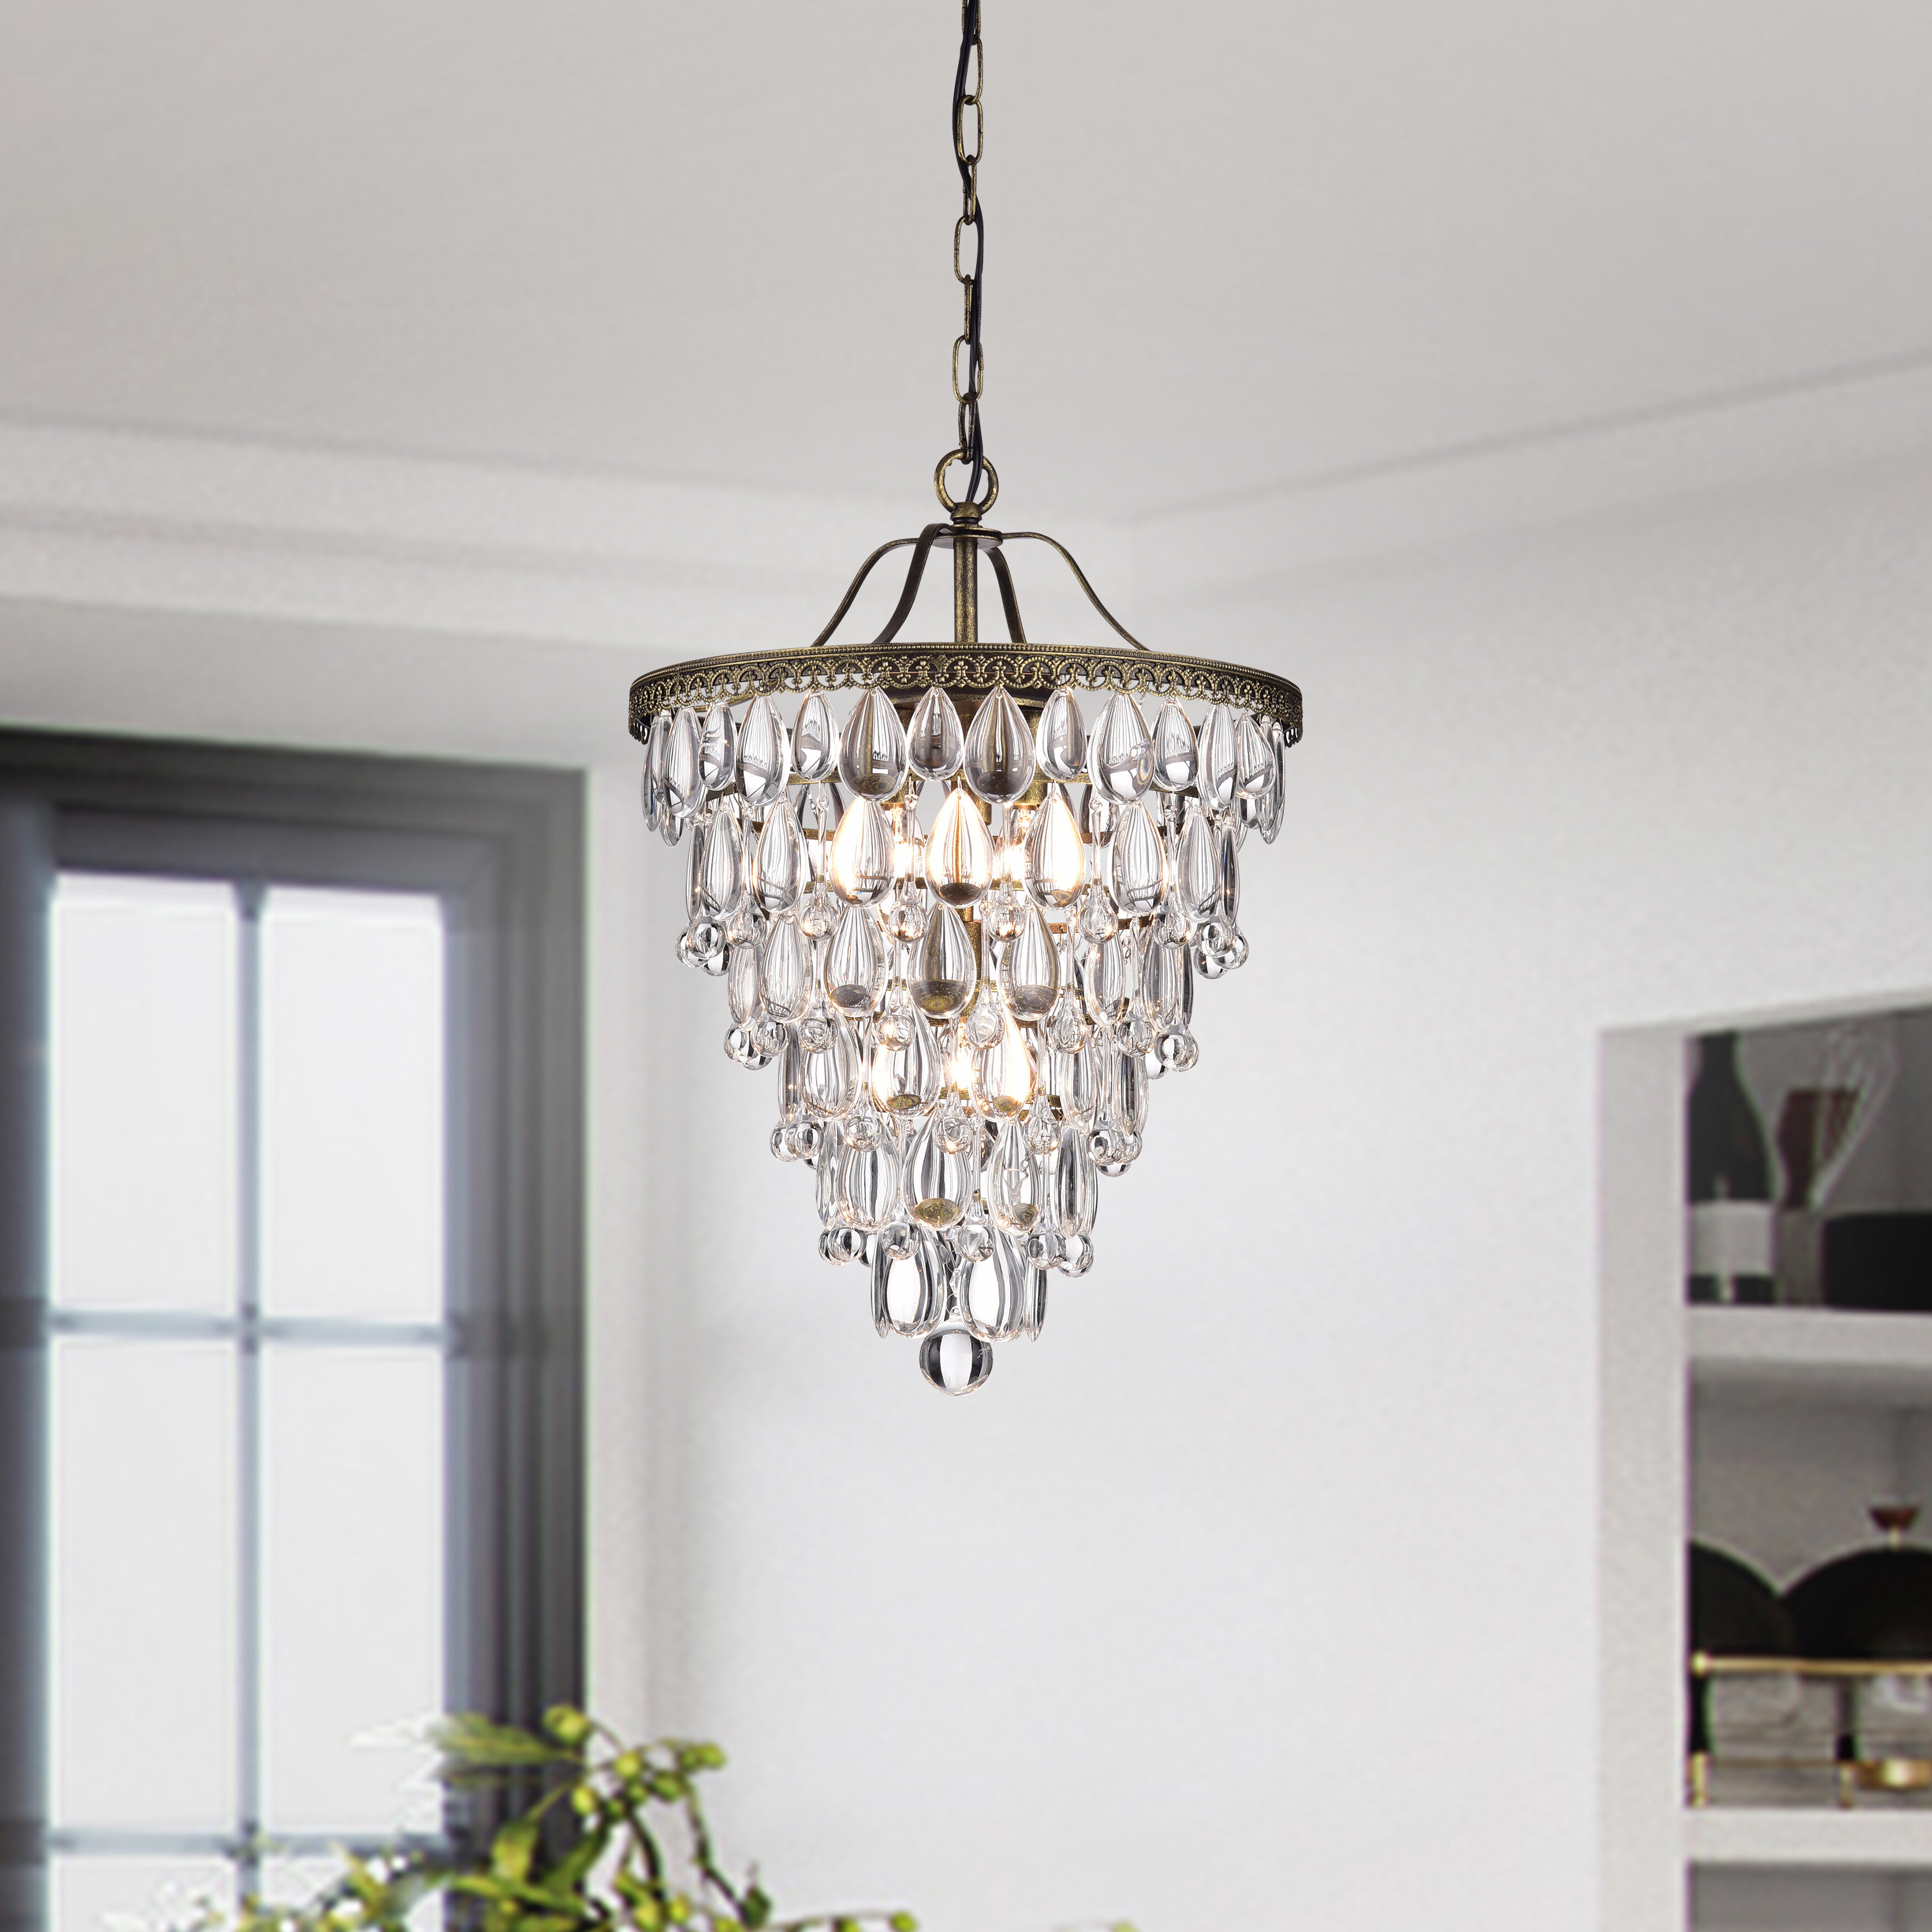 Totnes 4 Light Crystal Chandelier Within Well Known Benedetto 5 Light Crystal Chandeliers (View 8 of 25)